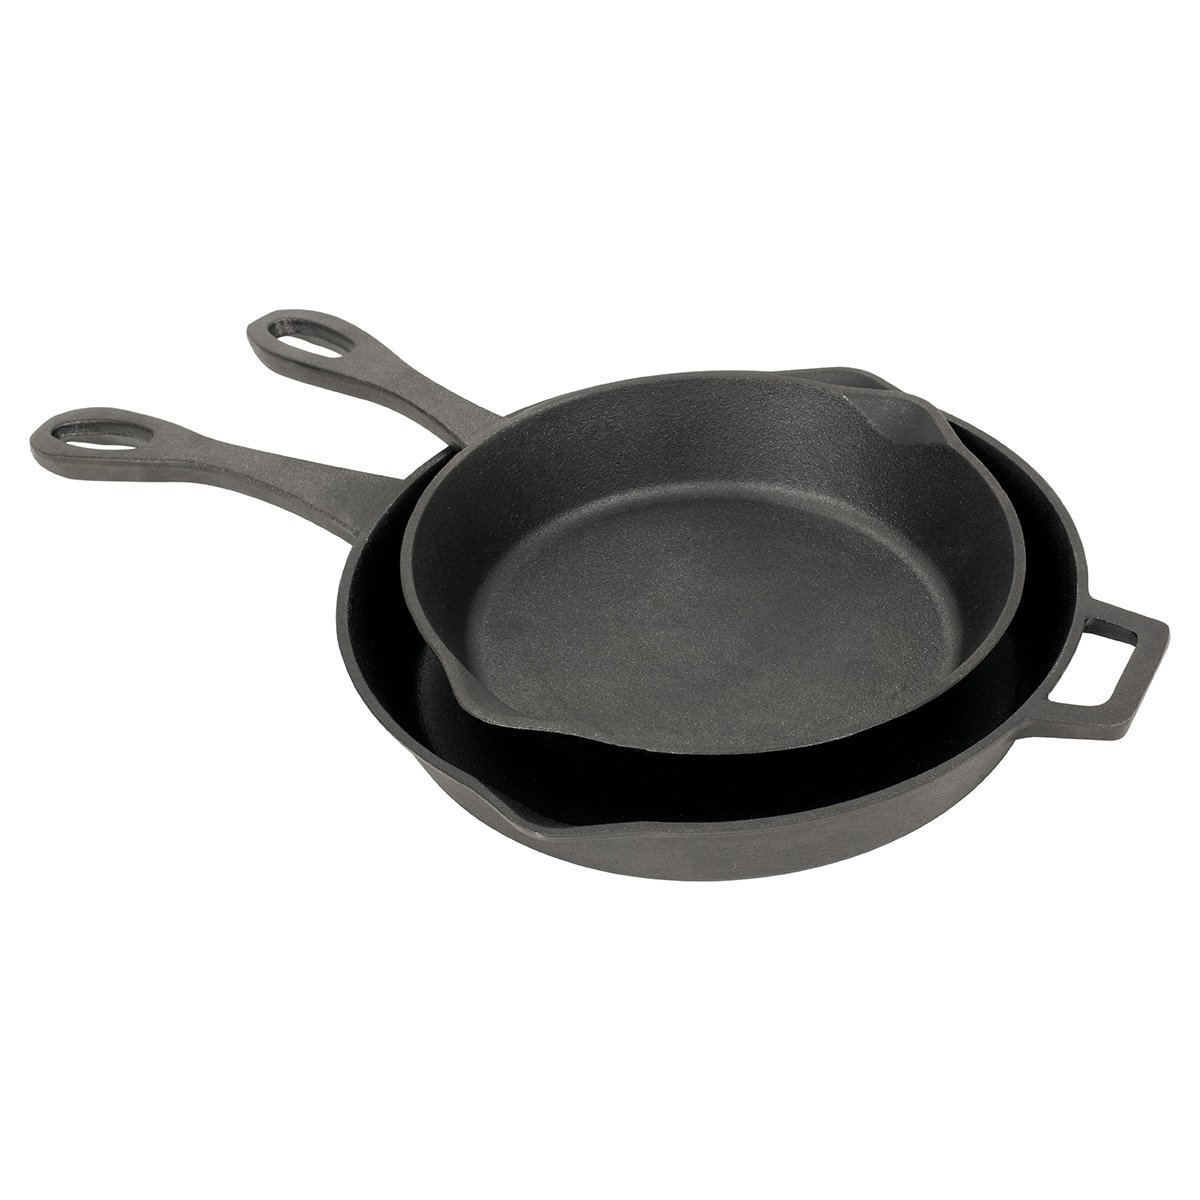 Bayou Classic 7451 Cast Iron Skillet Set, 10-Inch and 12-Inch, Black Cast Iron